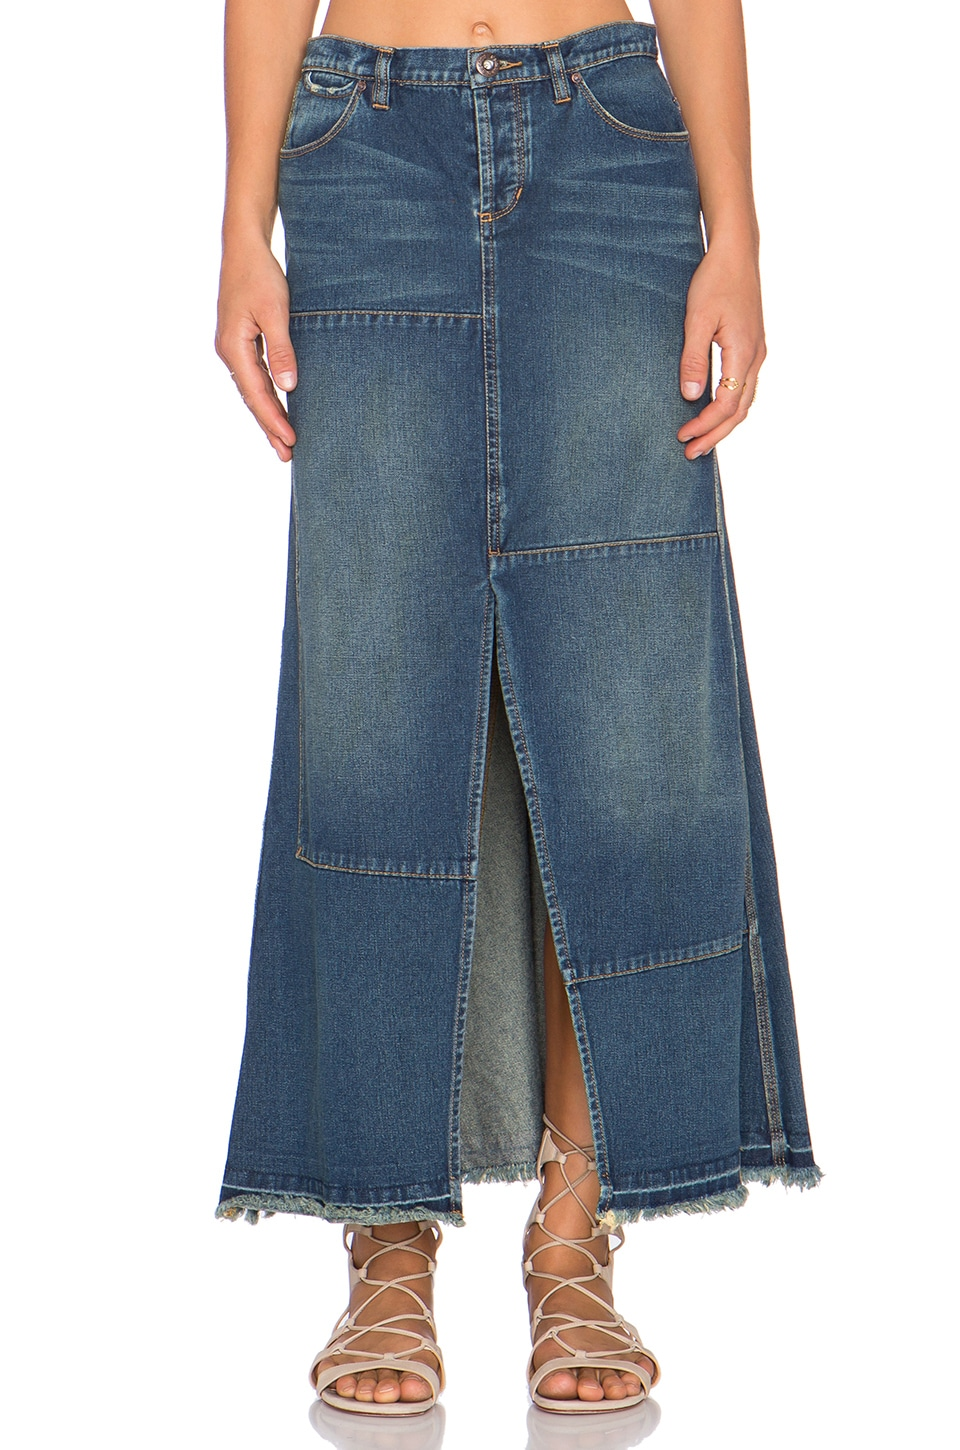 Free People Patchwork Maxi Skirt in Billie